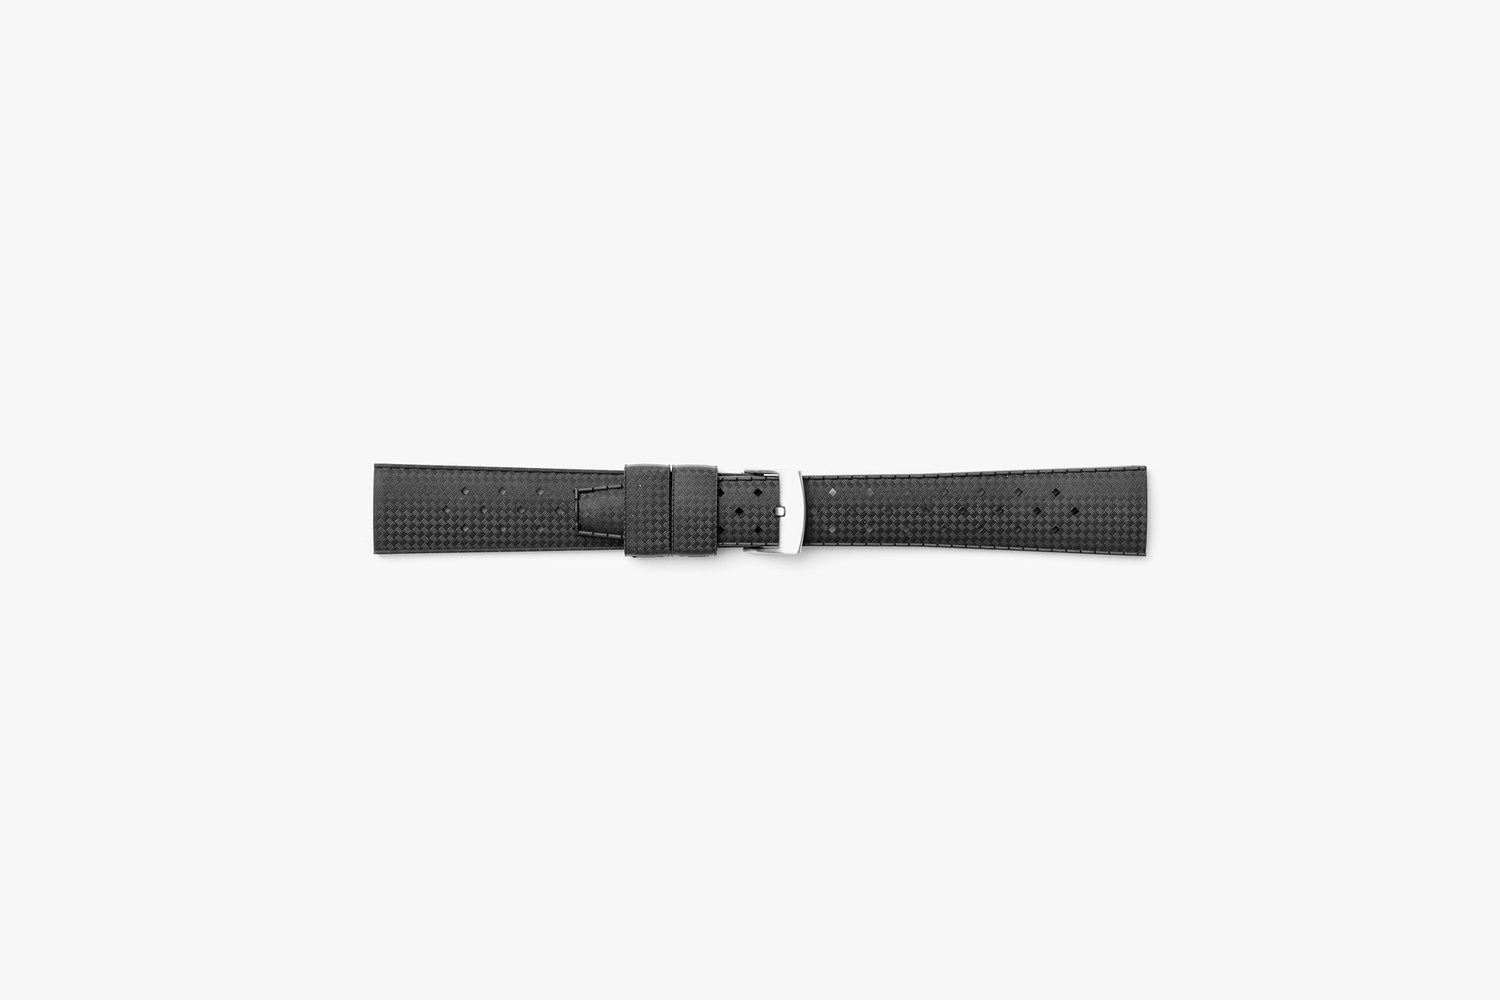 Black - TROPIC Dive Watch Strap - Laying flat